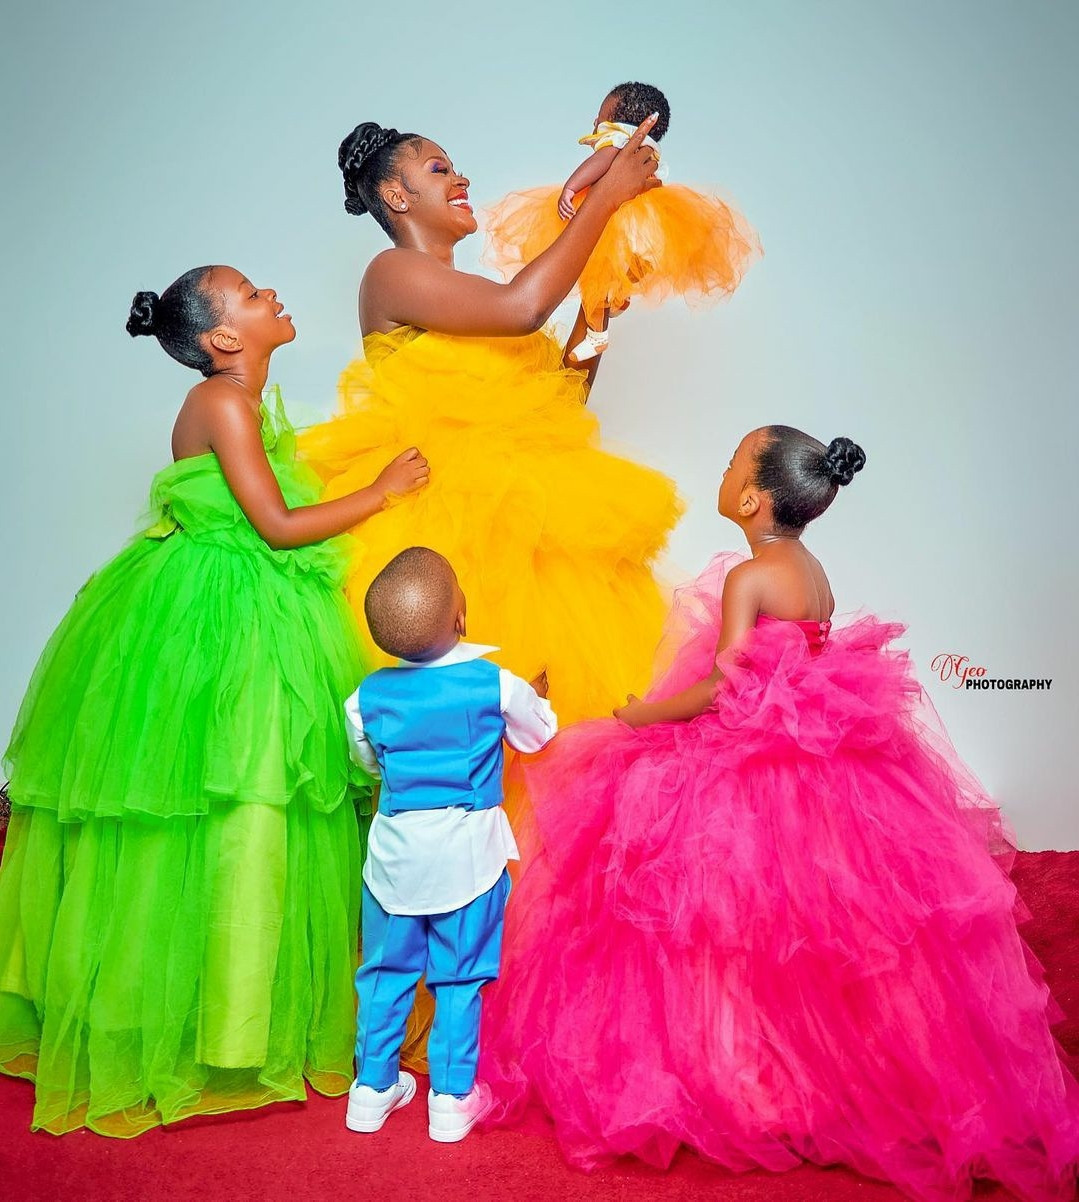 60a8fcce07c9b - Actress Chacha Eke Faani poses with her children in beautiful new photos